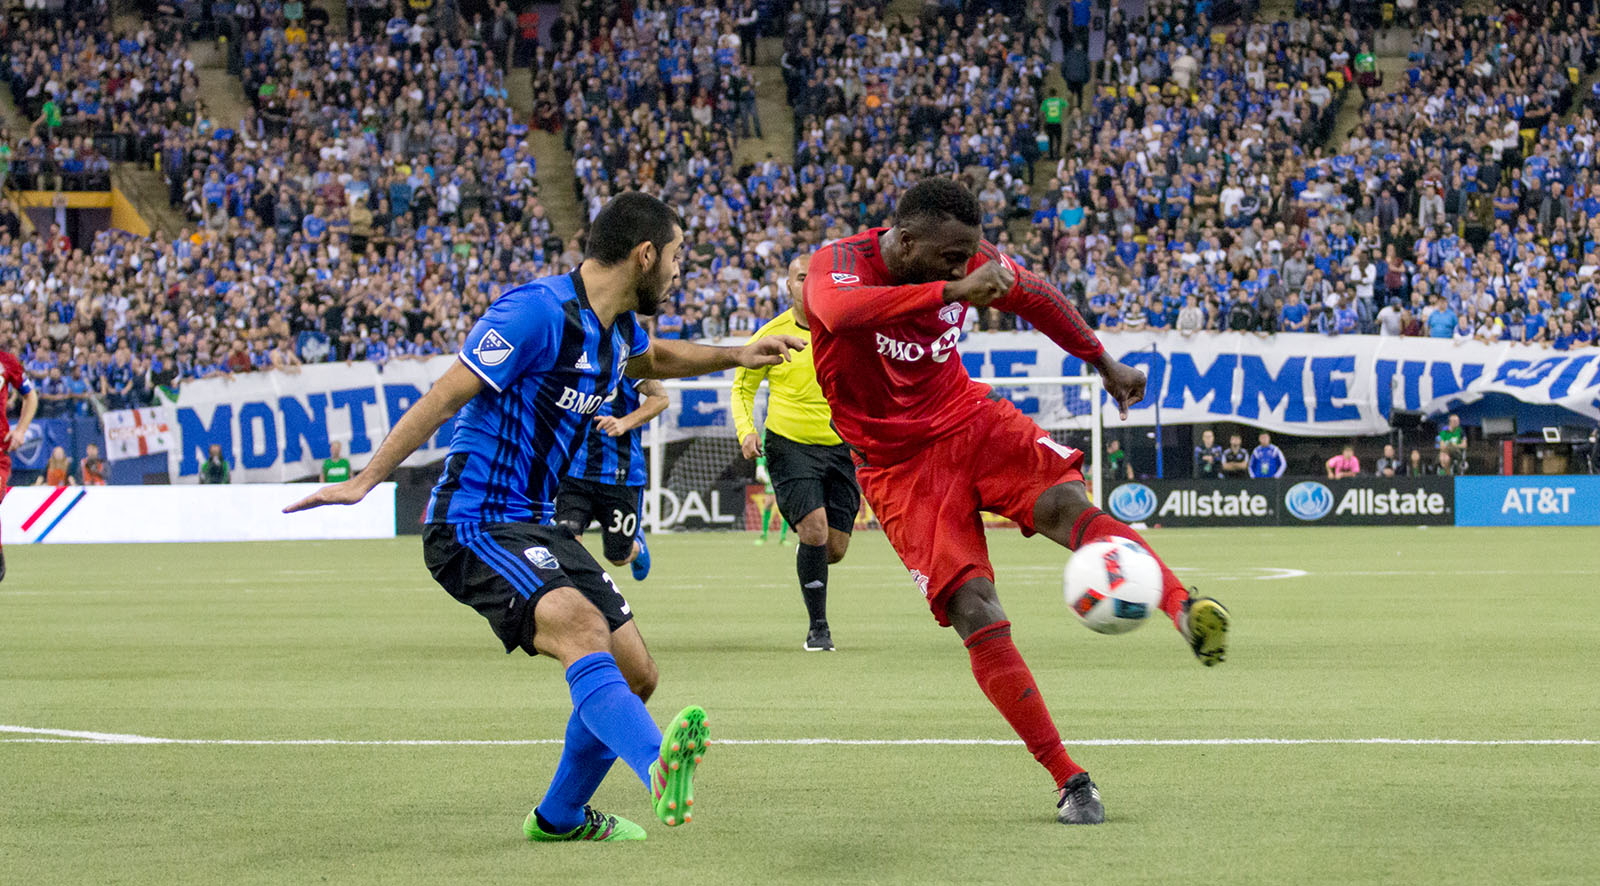 Altidore with a goal scoring opportunity during the second half of the eastern conference final in Montreal on November 22, 2016. Images by Dennis Marciniak.